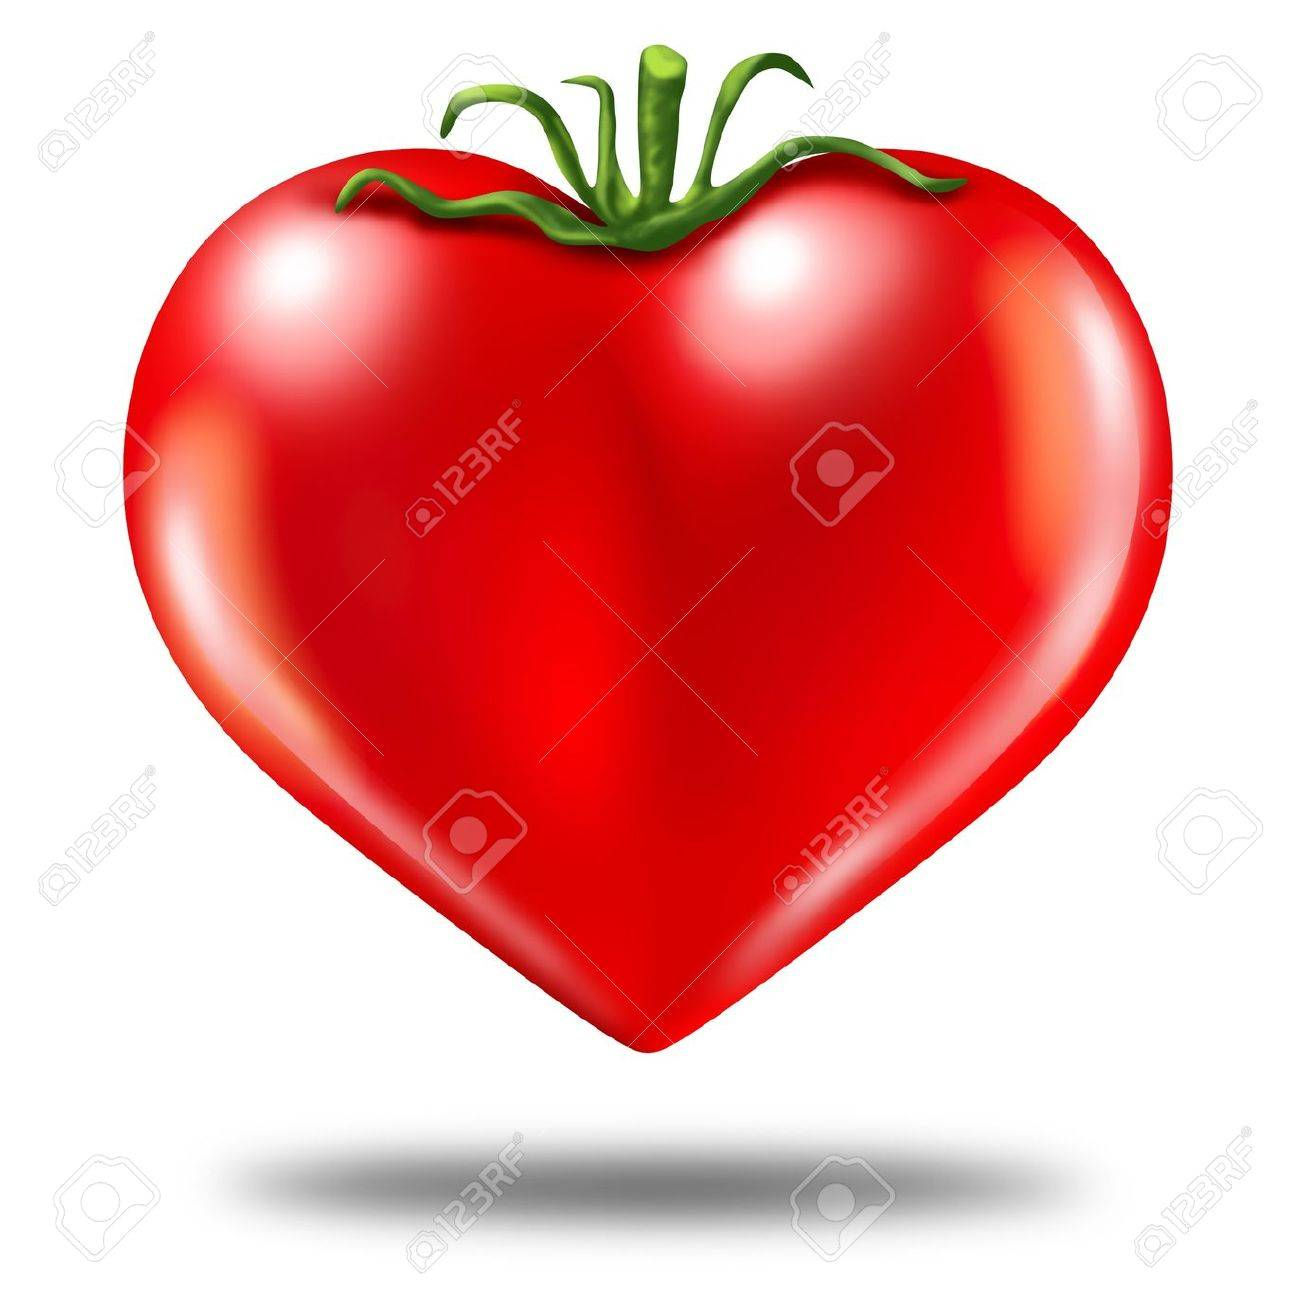 Healthy Lifestyle Symbol Represented By A Red Tomato In The Shape ...